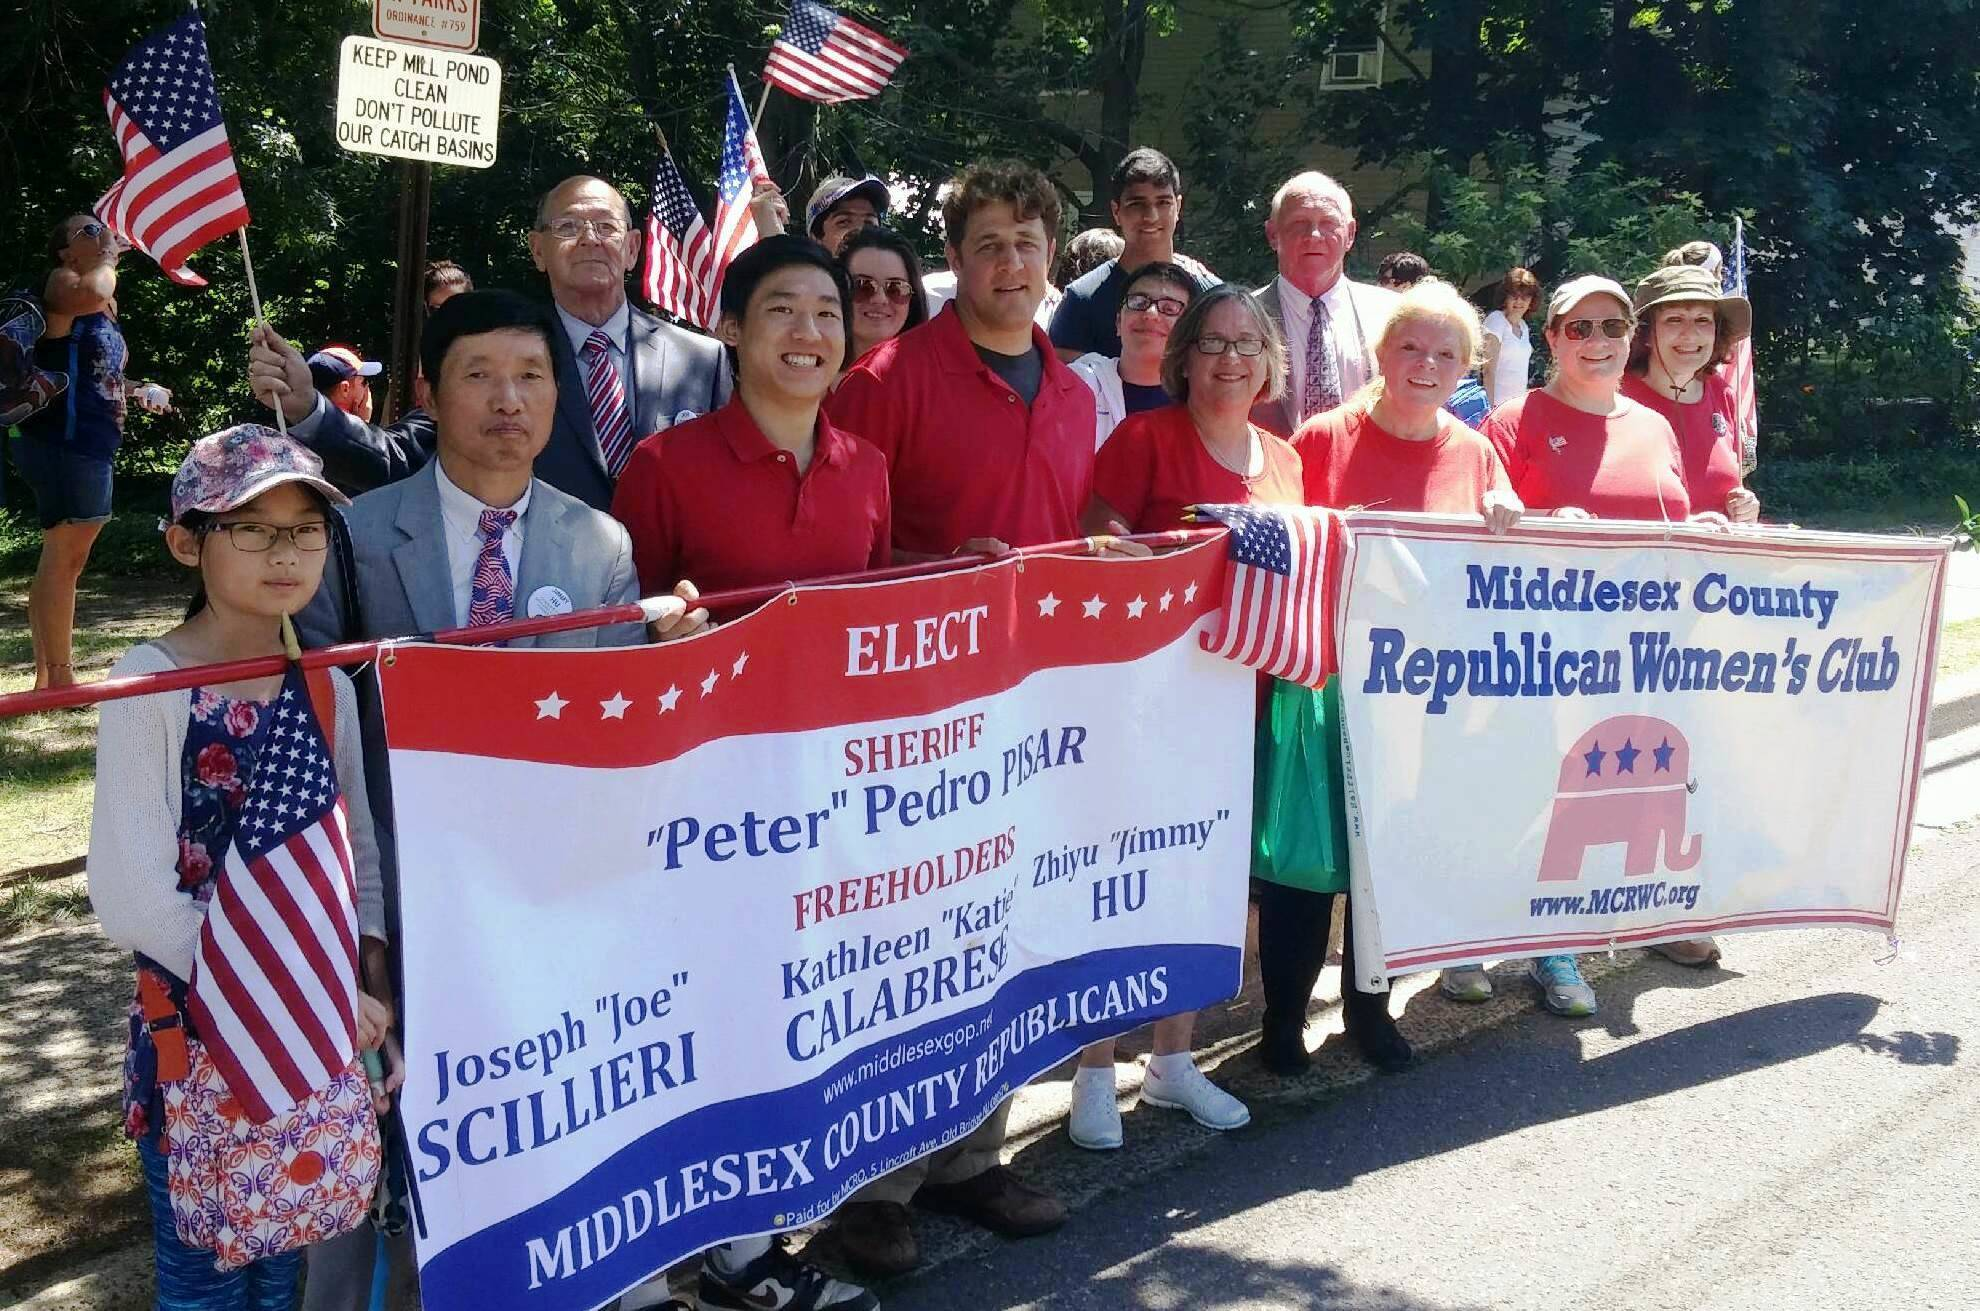 a39a11f17a15179fde9a_Parade-_group_shot-_MCGOP_and_MCRWC.jpg